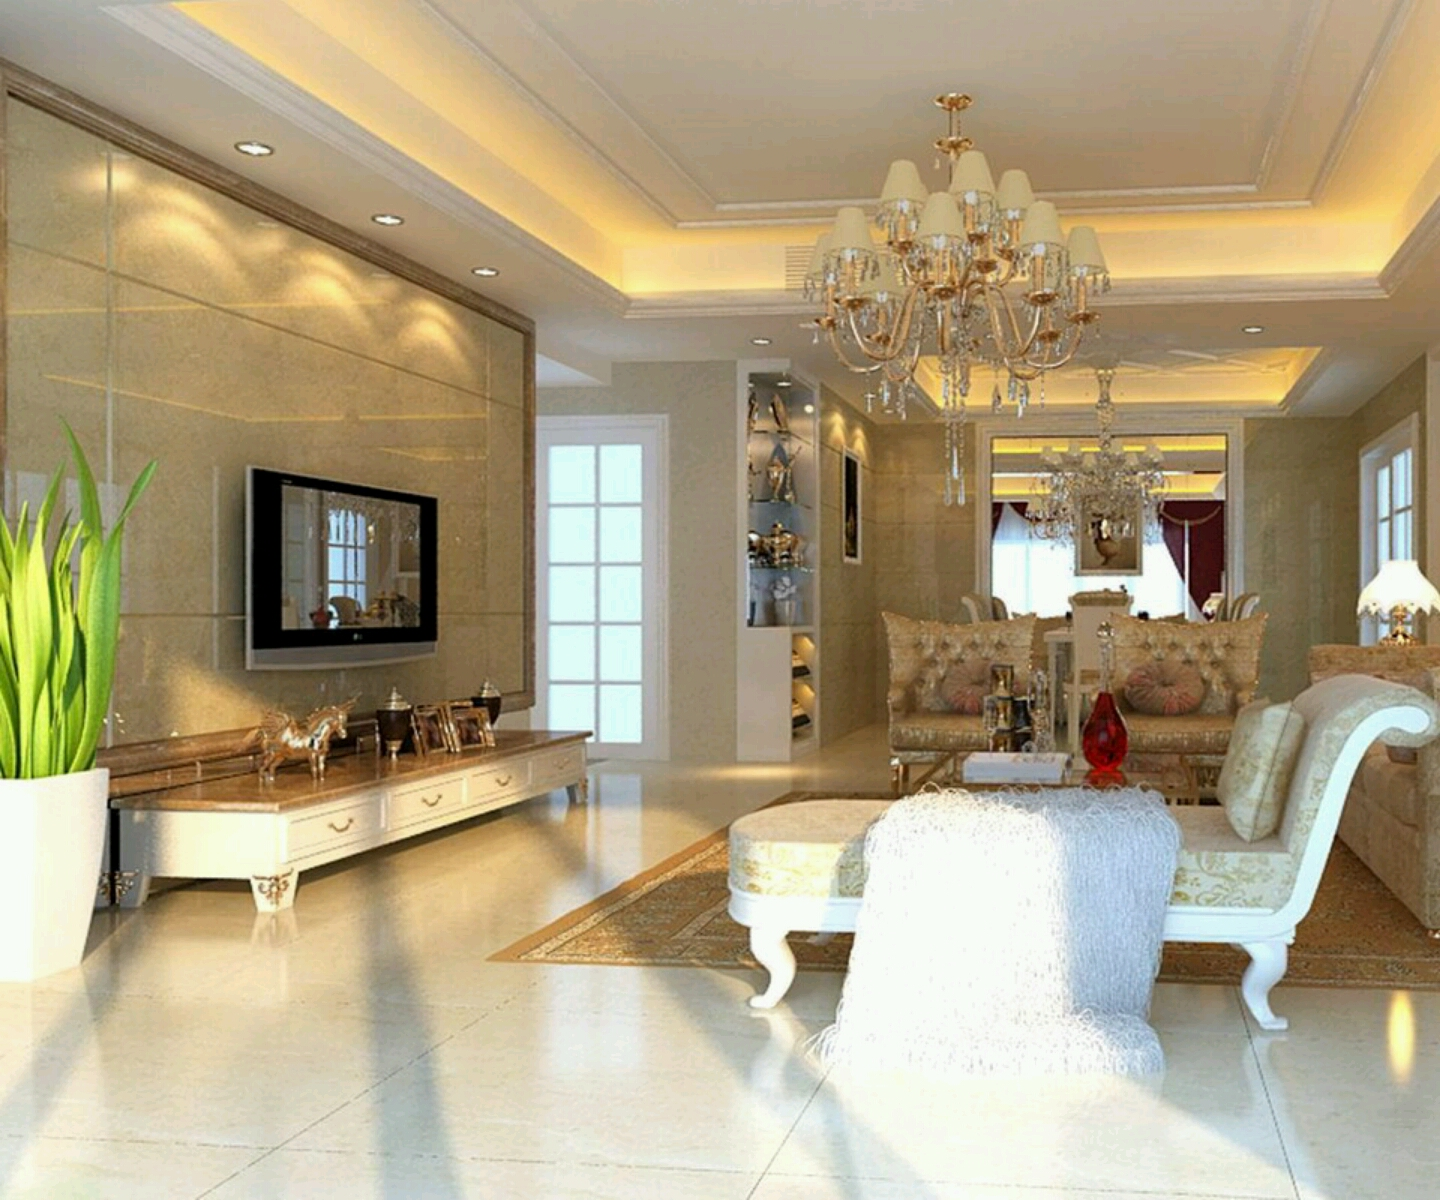 New Home Designs Latest Ultra Modern Living Rooms: New Home Designs Latest.: Luxury Homes Interior Decoration